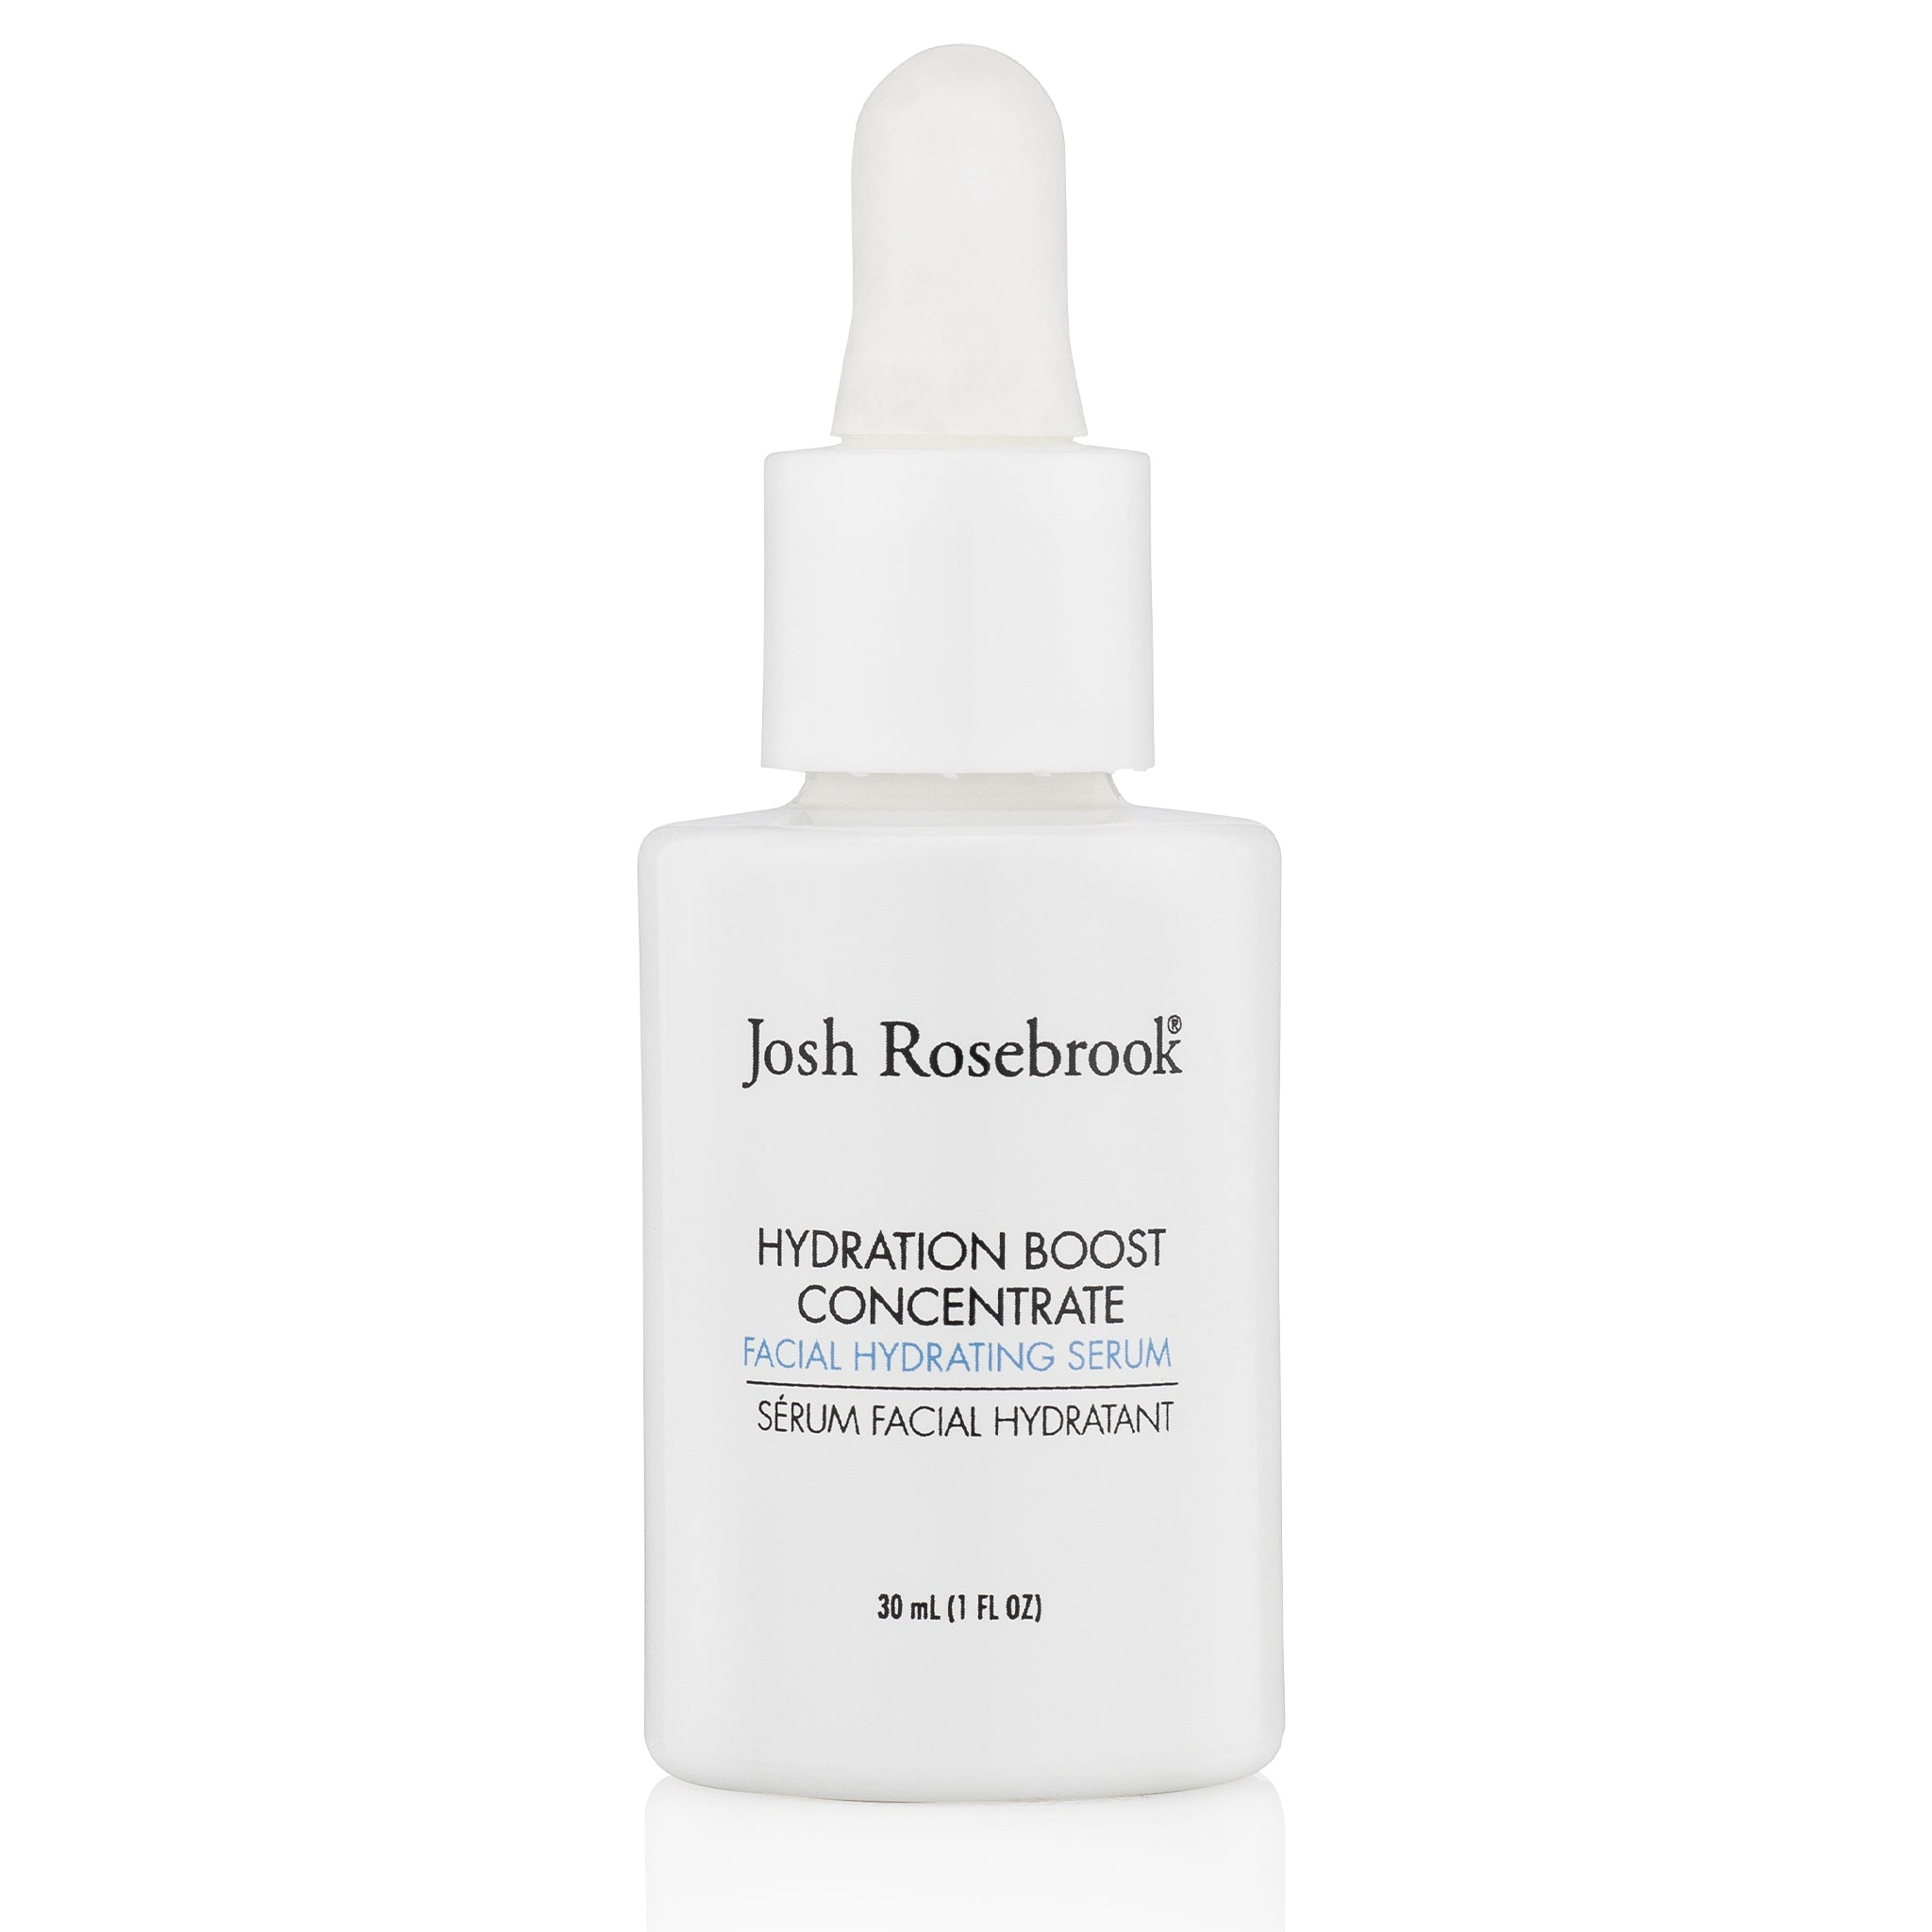 Hydration Boost Concentrate